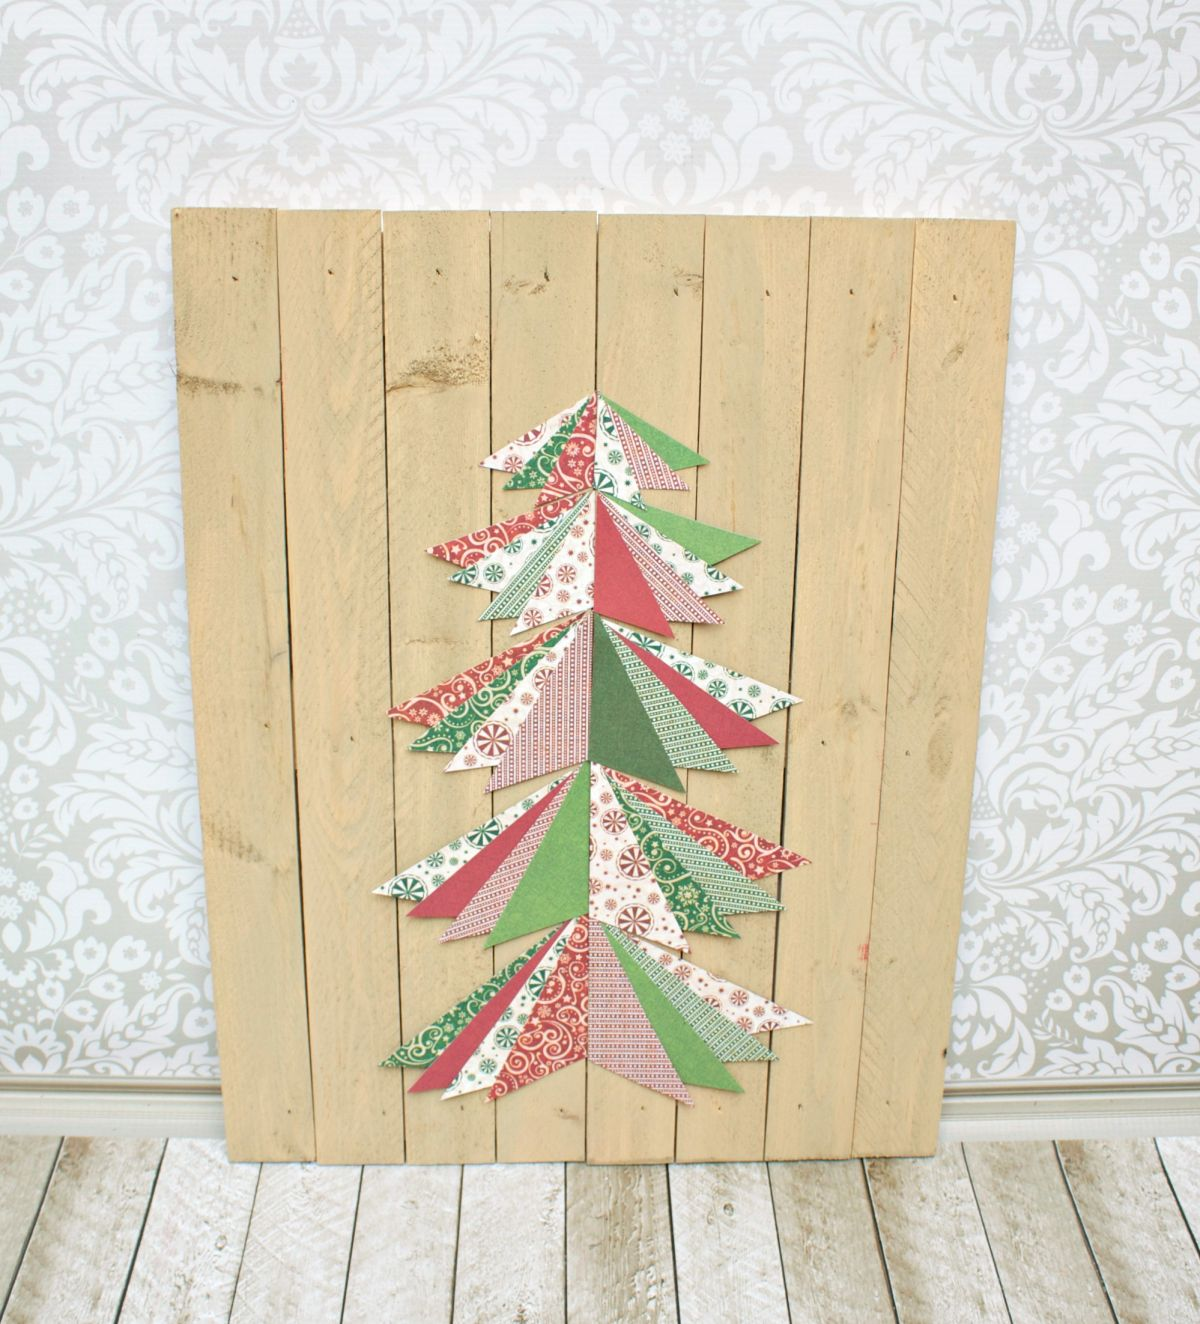 Paper Christmas Tree Wall Art Materials